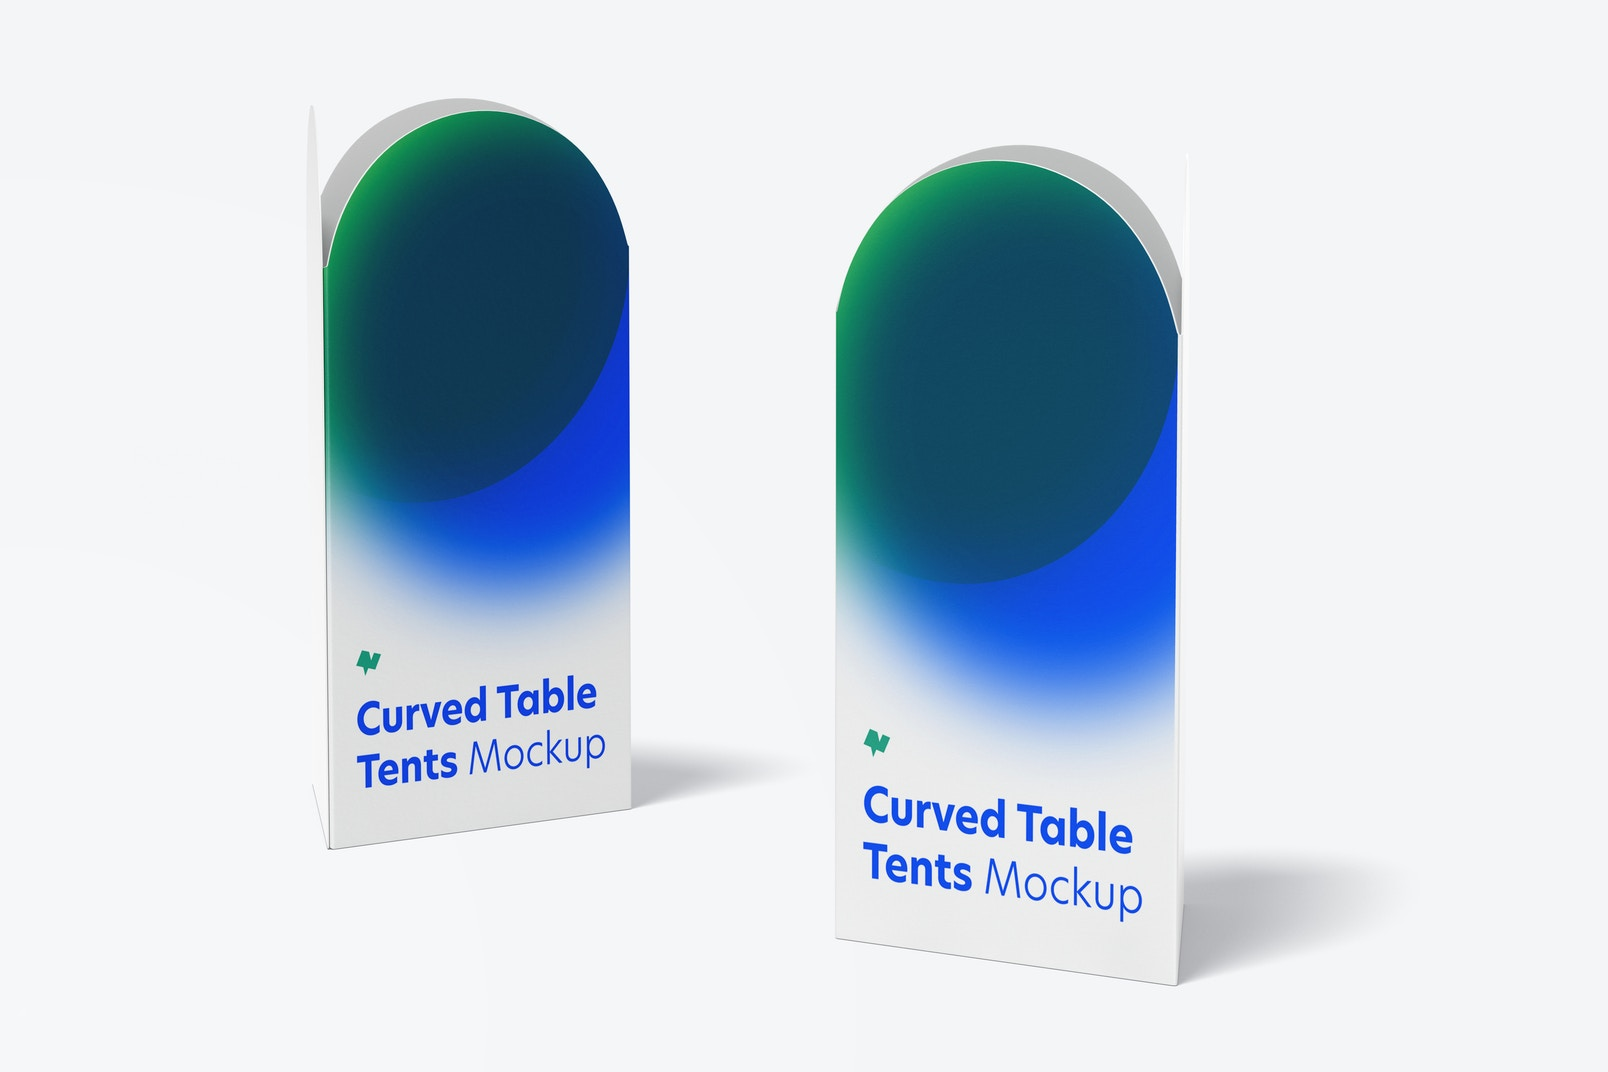 Curved Top Table Tents Mockup, Perspective